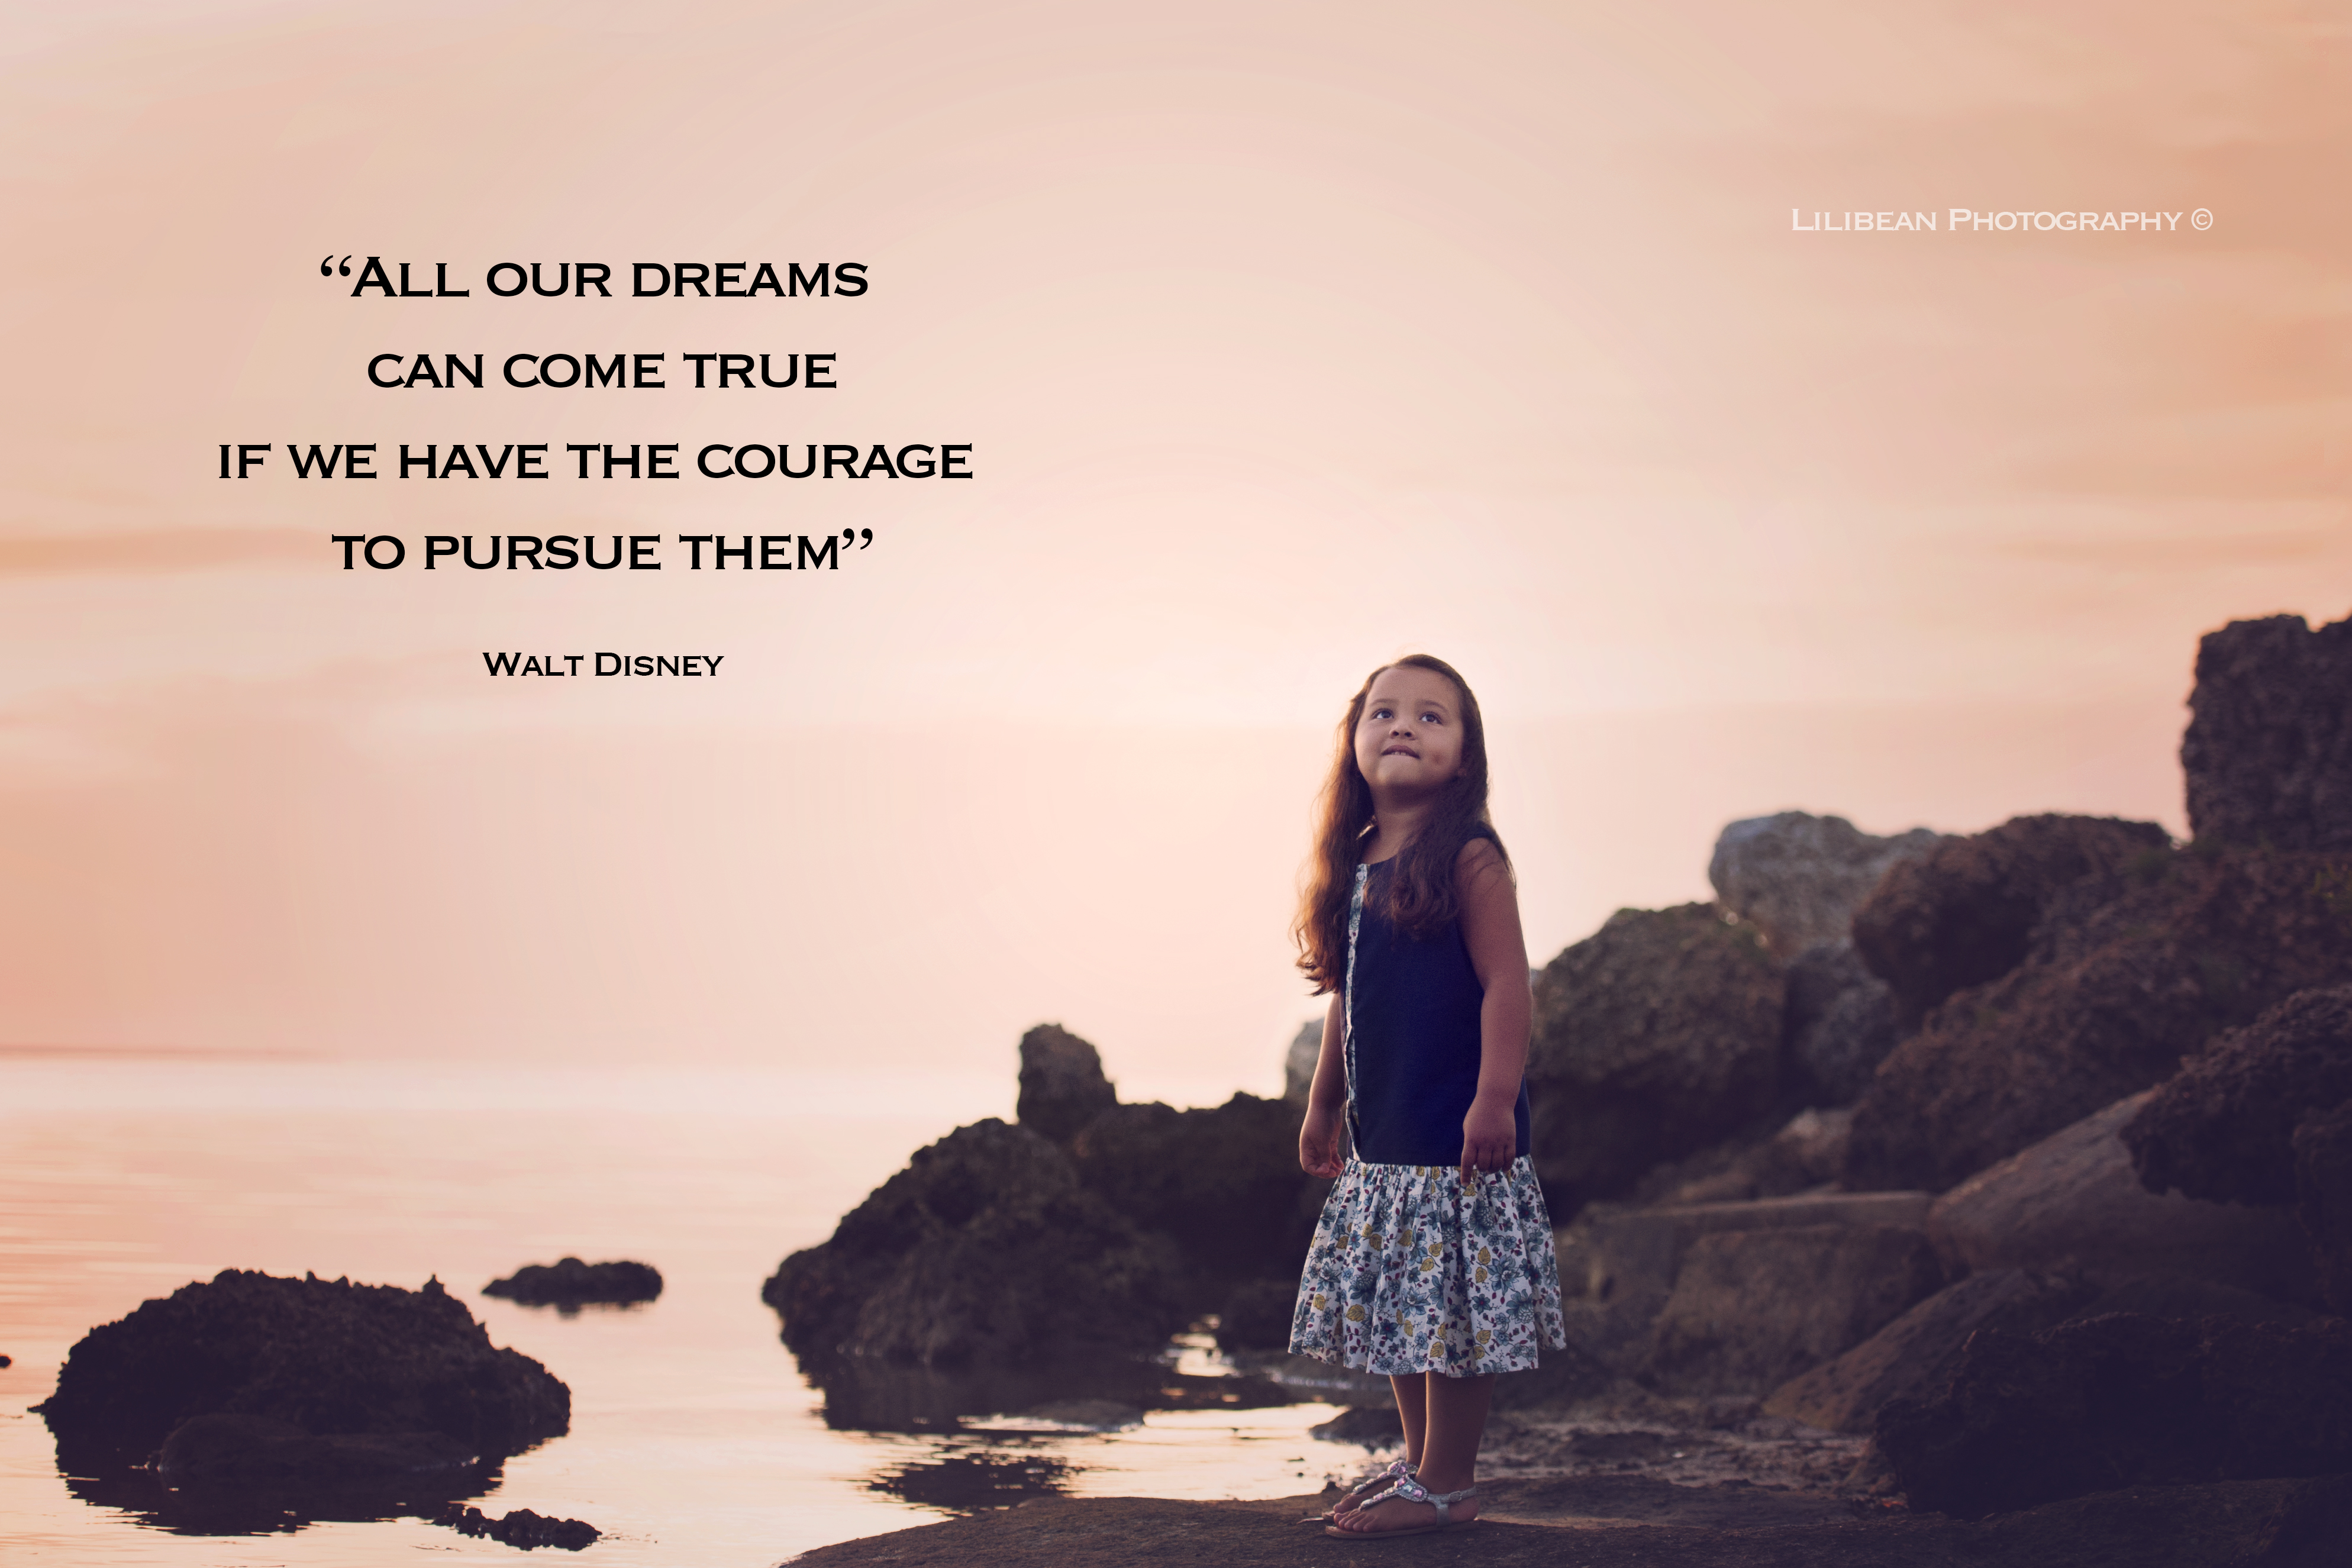 walt disney quote all our dreams can come true courage south florida photography best miami photography aventura florida pembroke pines newborn maternity